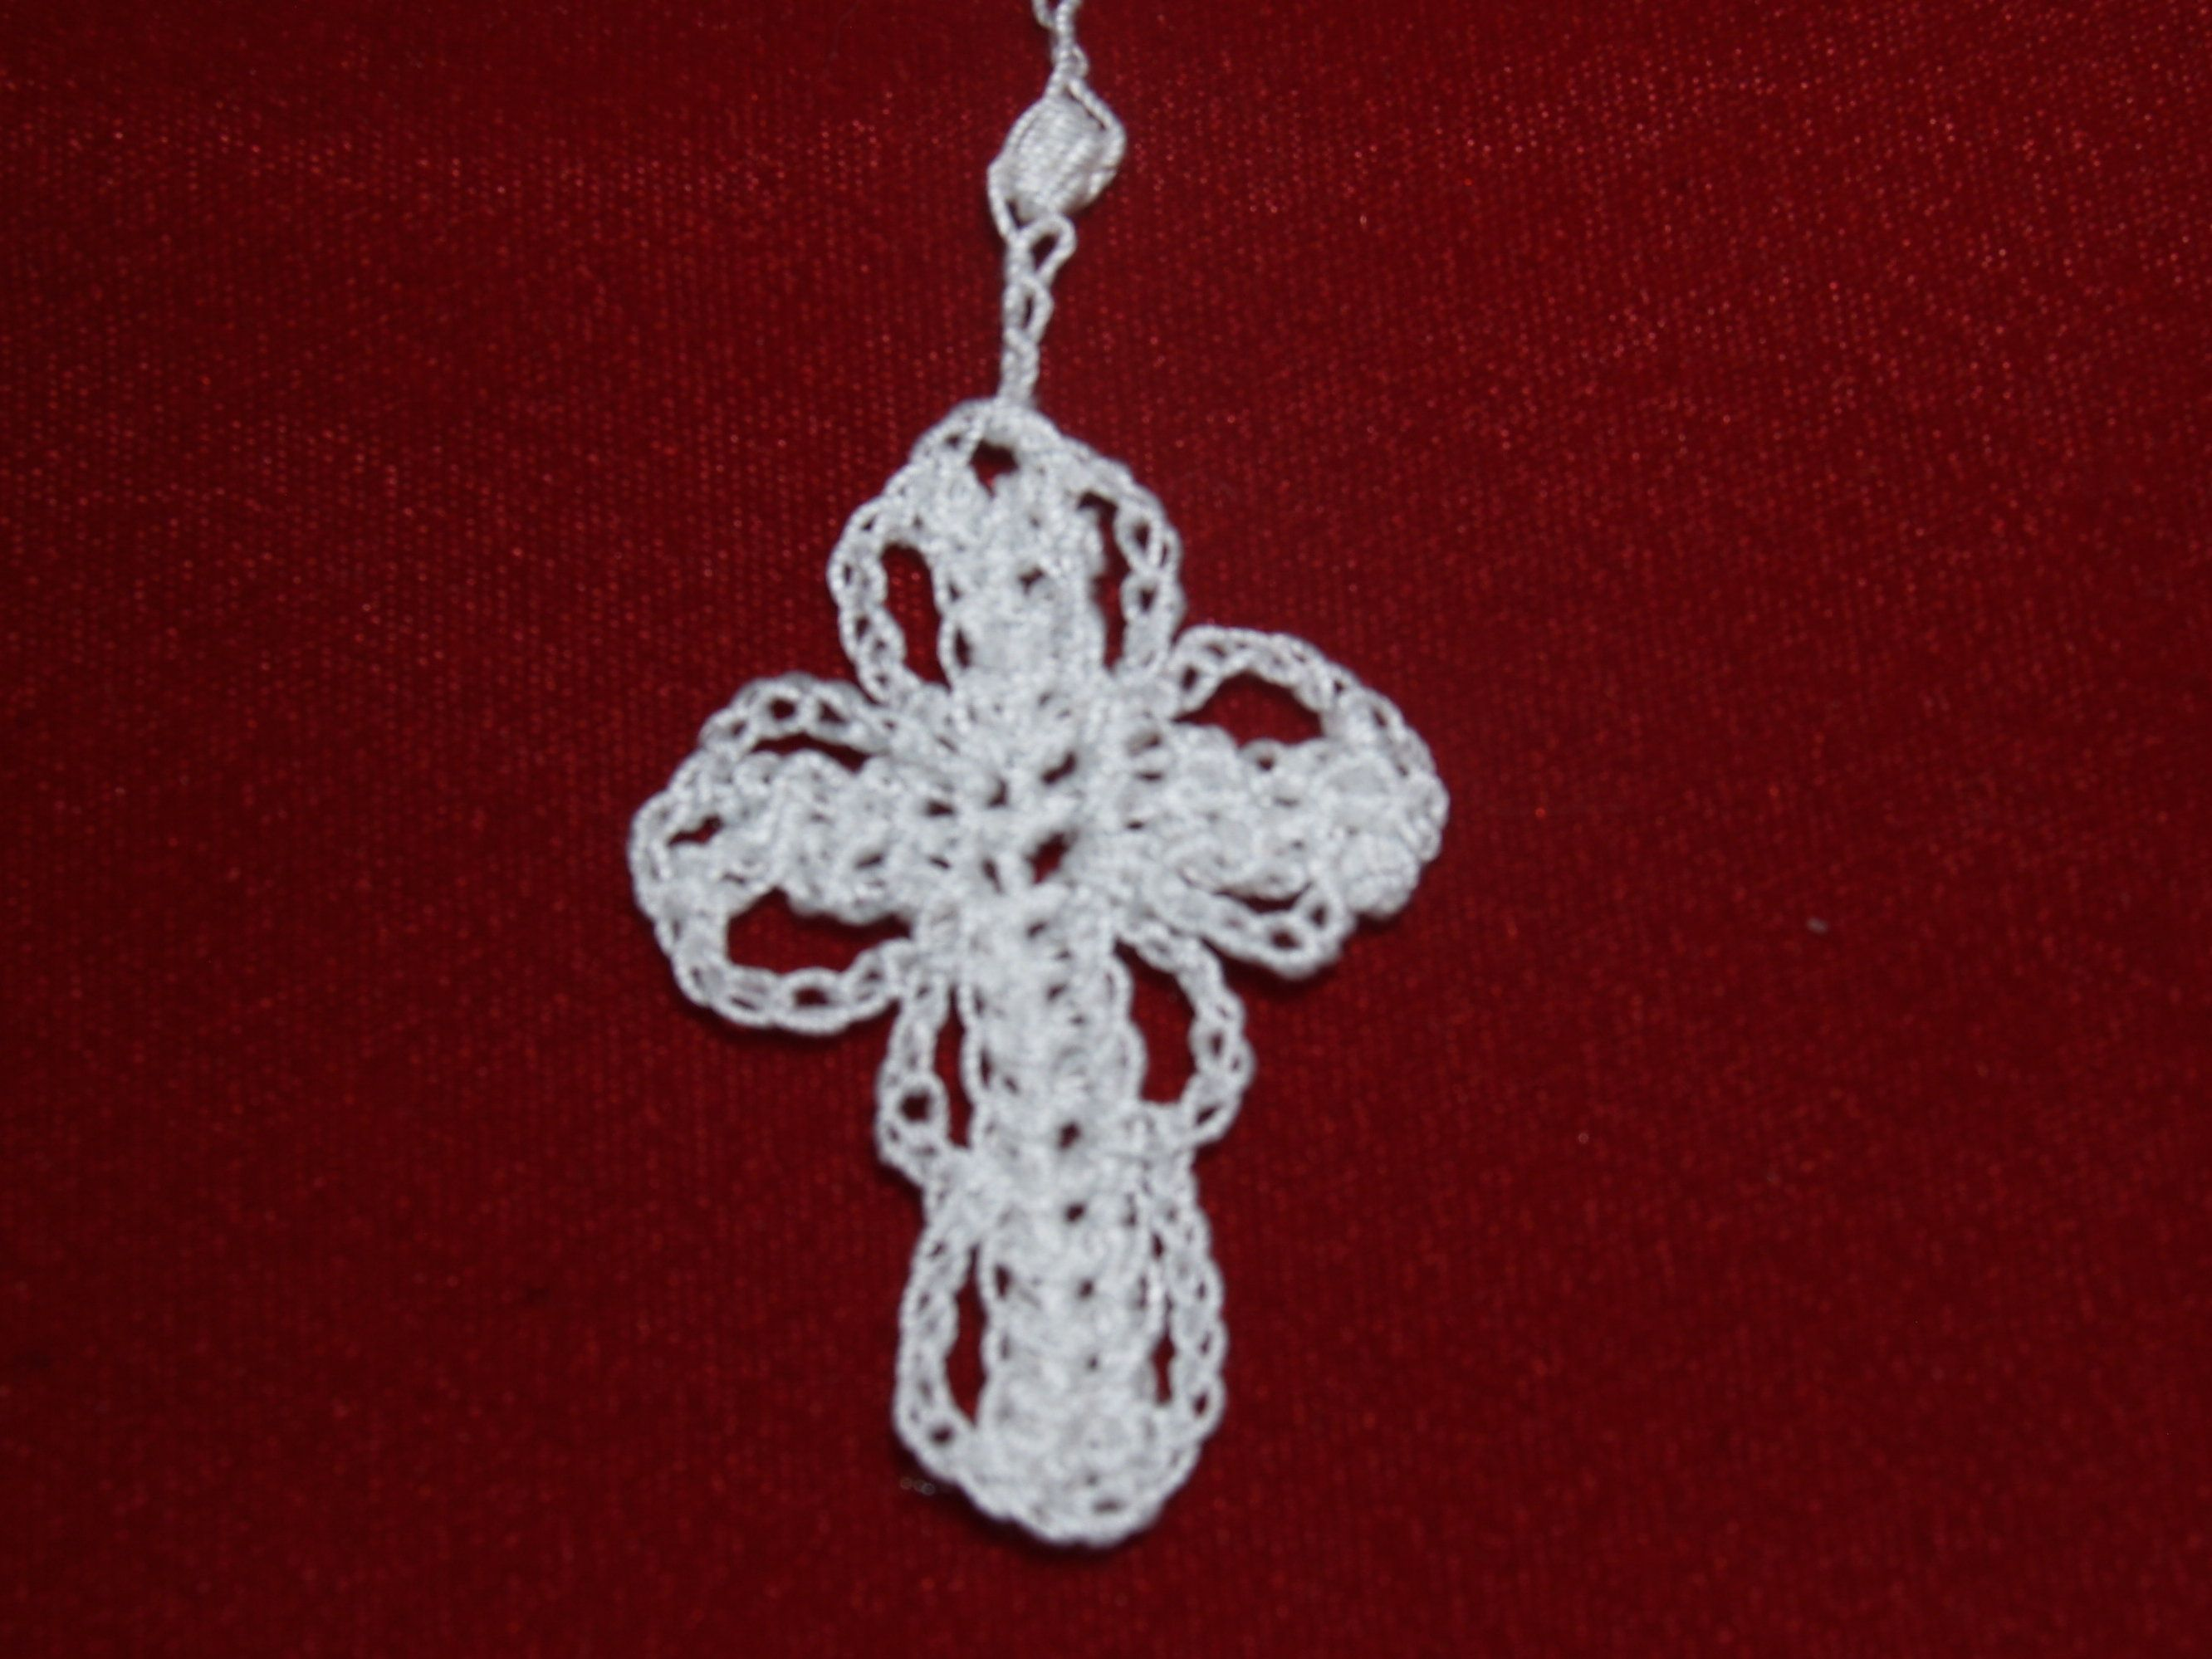 Crochet Rosary Pattern Crochet Free Patterns Crochet Pinterest